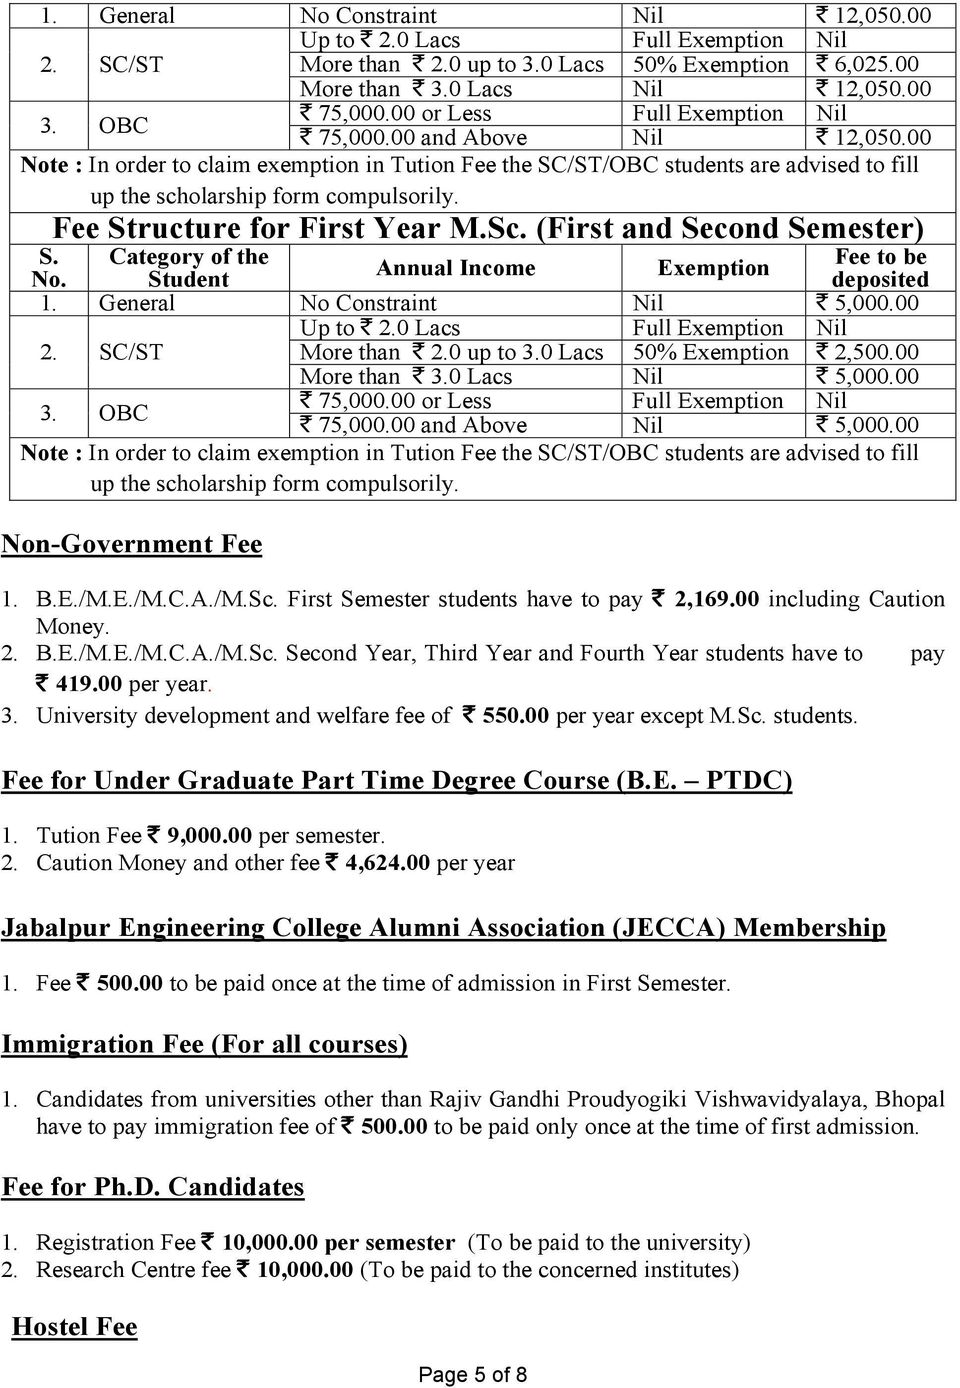 Fee Structure for First Year M.Sc. (First and Second Semester) Category of the Student Annual Income Exemption Fee to be deposited 1. General No Constraint Nil ` 5,000.00 Up to ` 2.